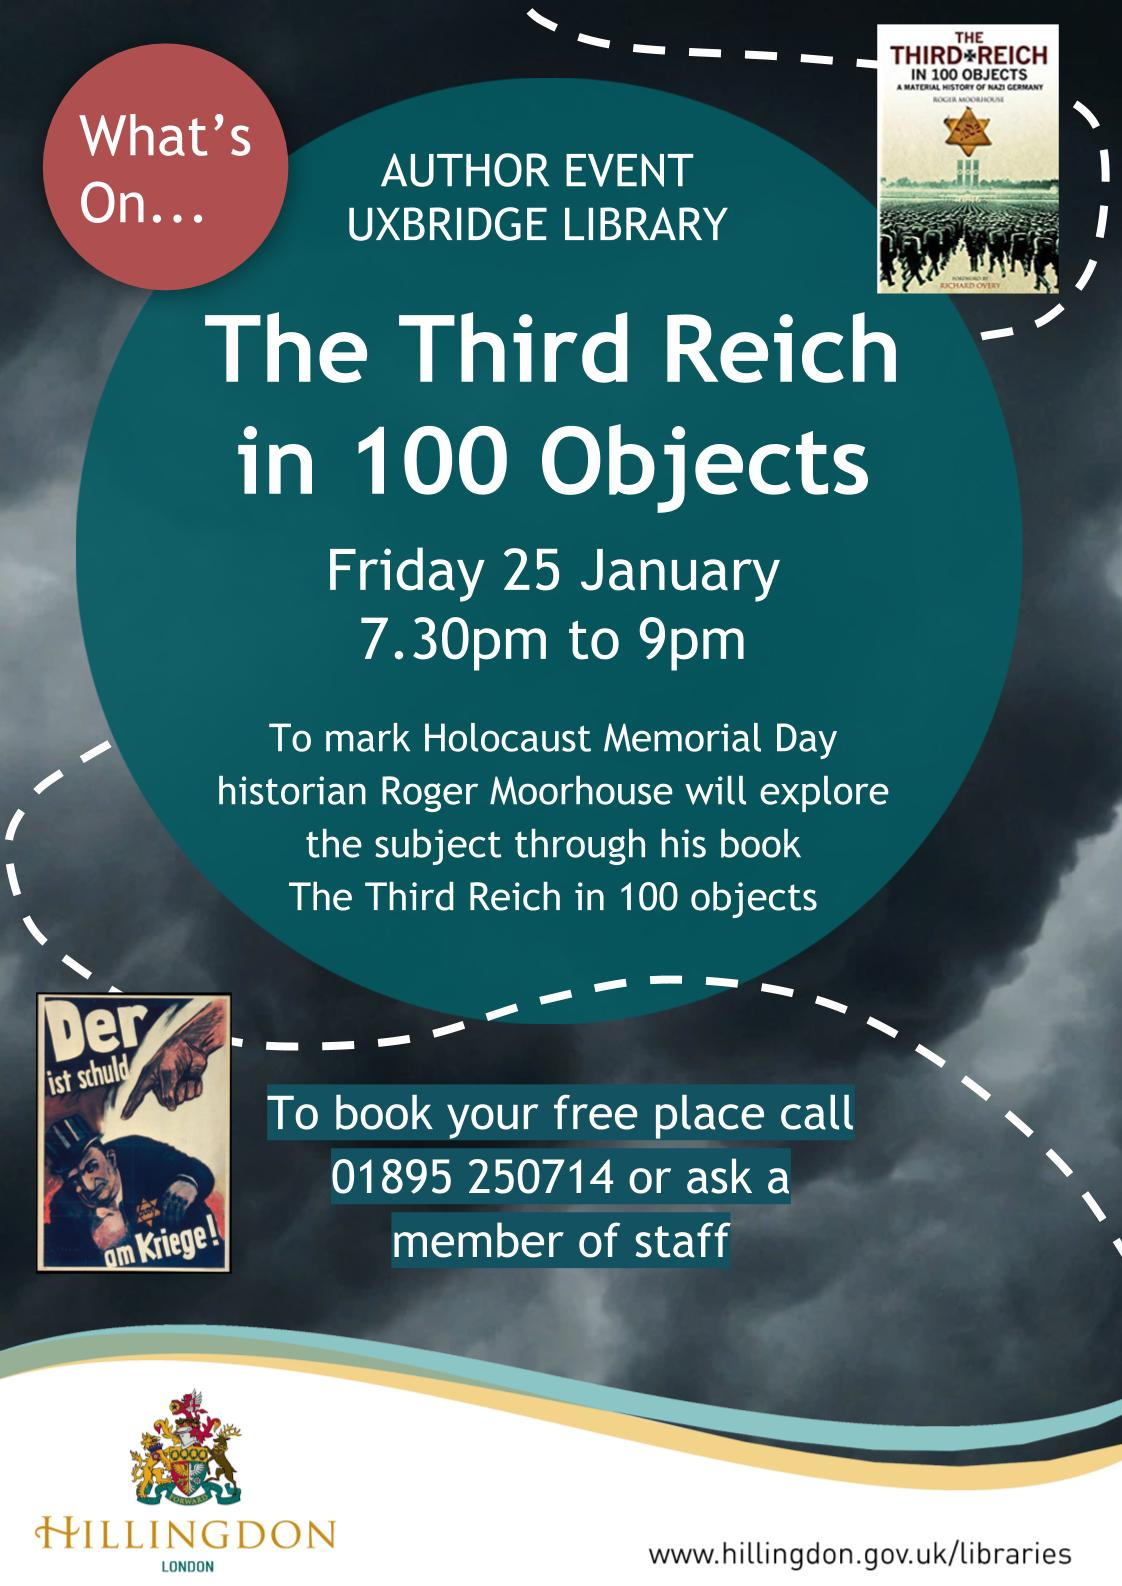 The Third Reich in a 100 Objects